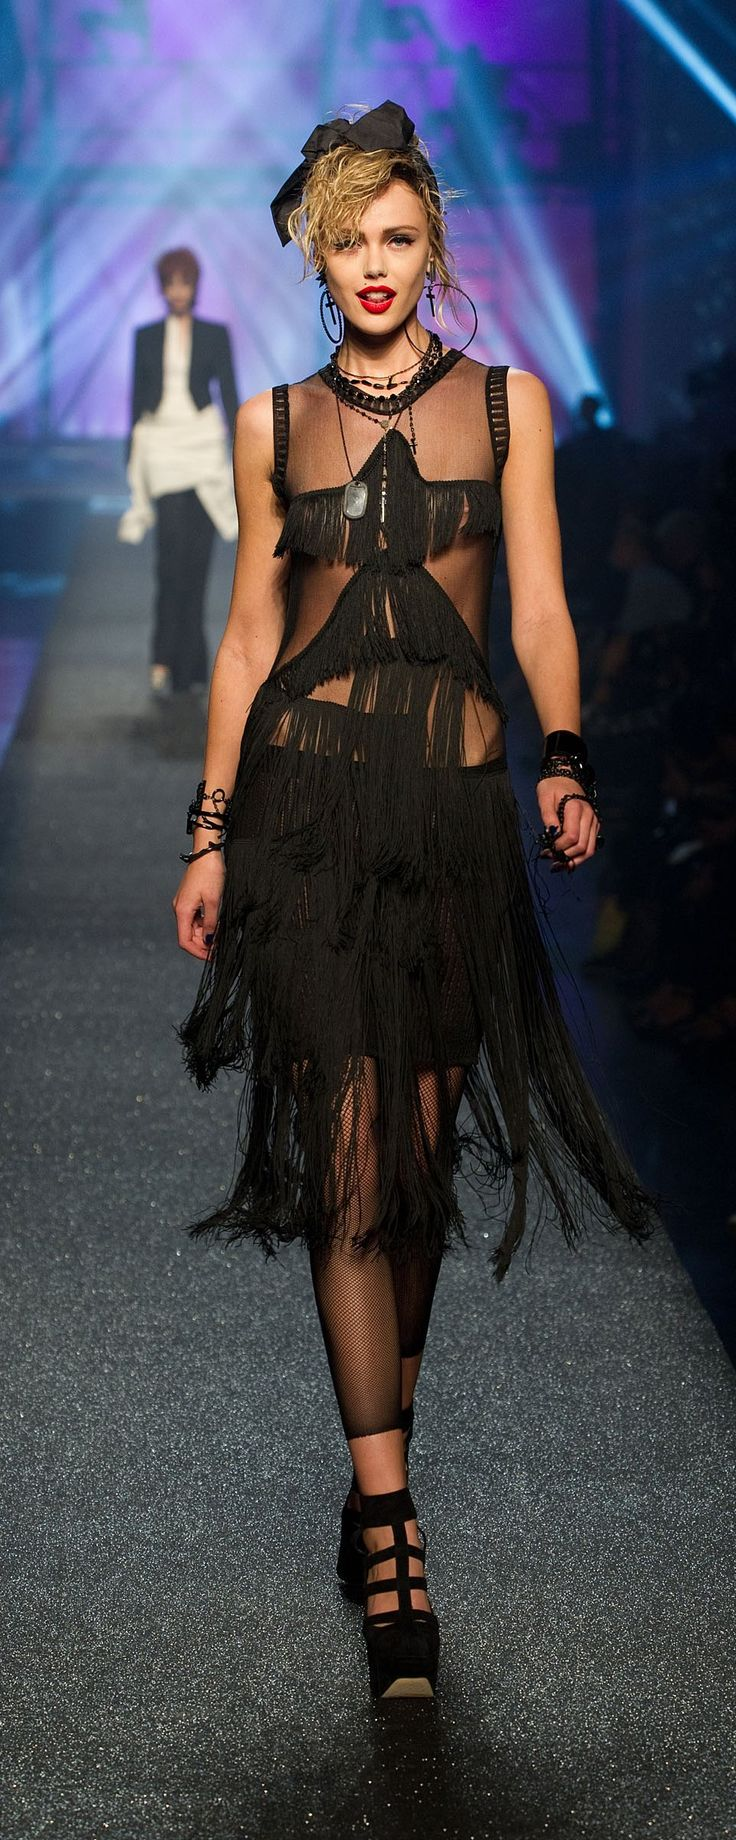 Jean Paul Gaultier Spring-summer 2013 - Ready-to-Wear - http://www.orientpalms.com/jean-paul-gaultier-3137